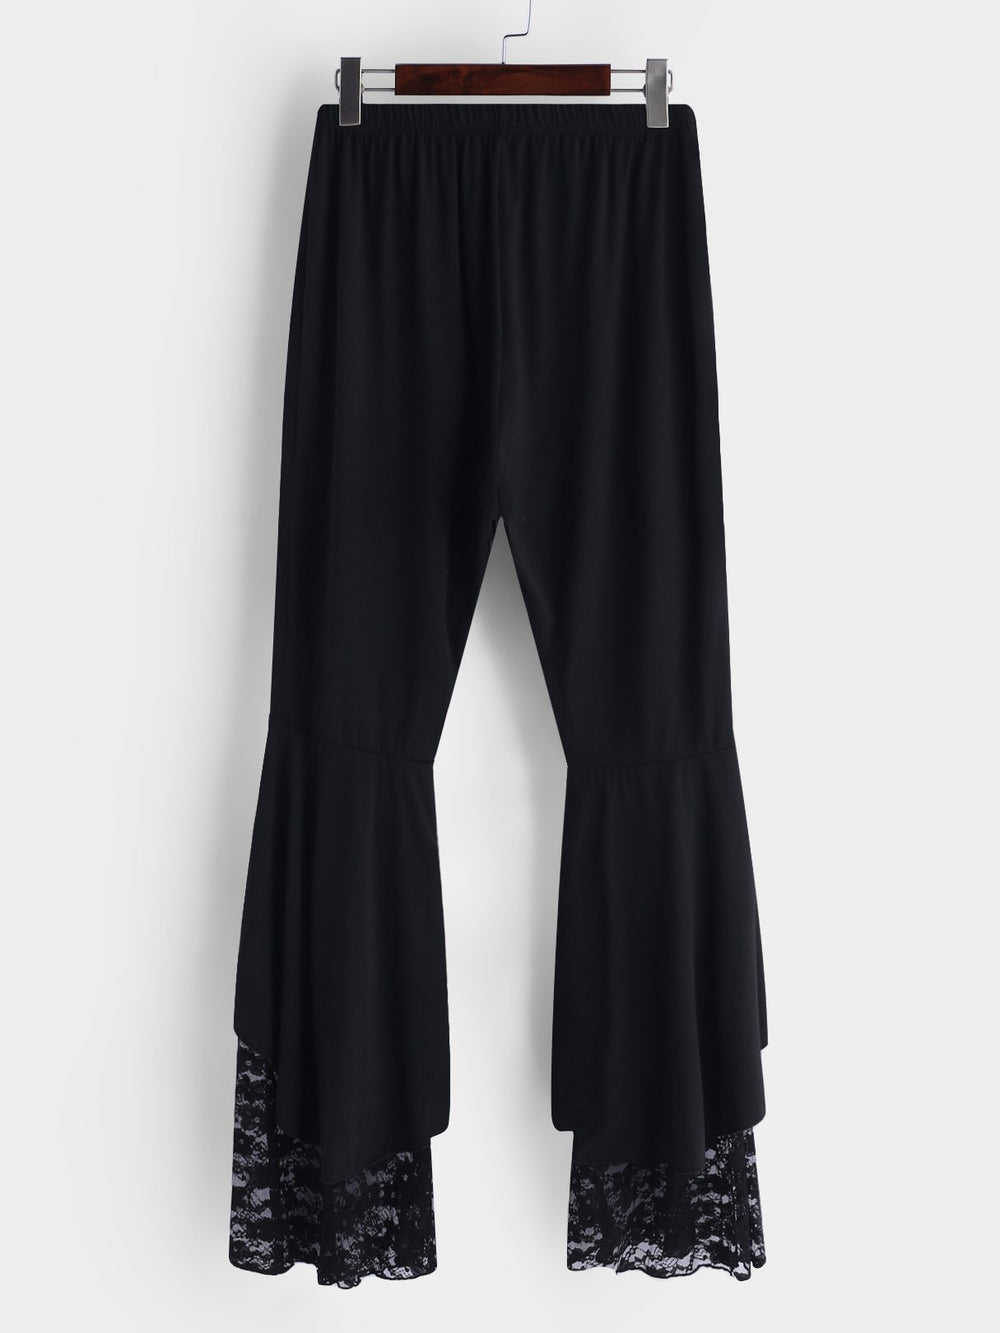 Plus Size Velvet Bell Bottoms